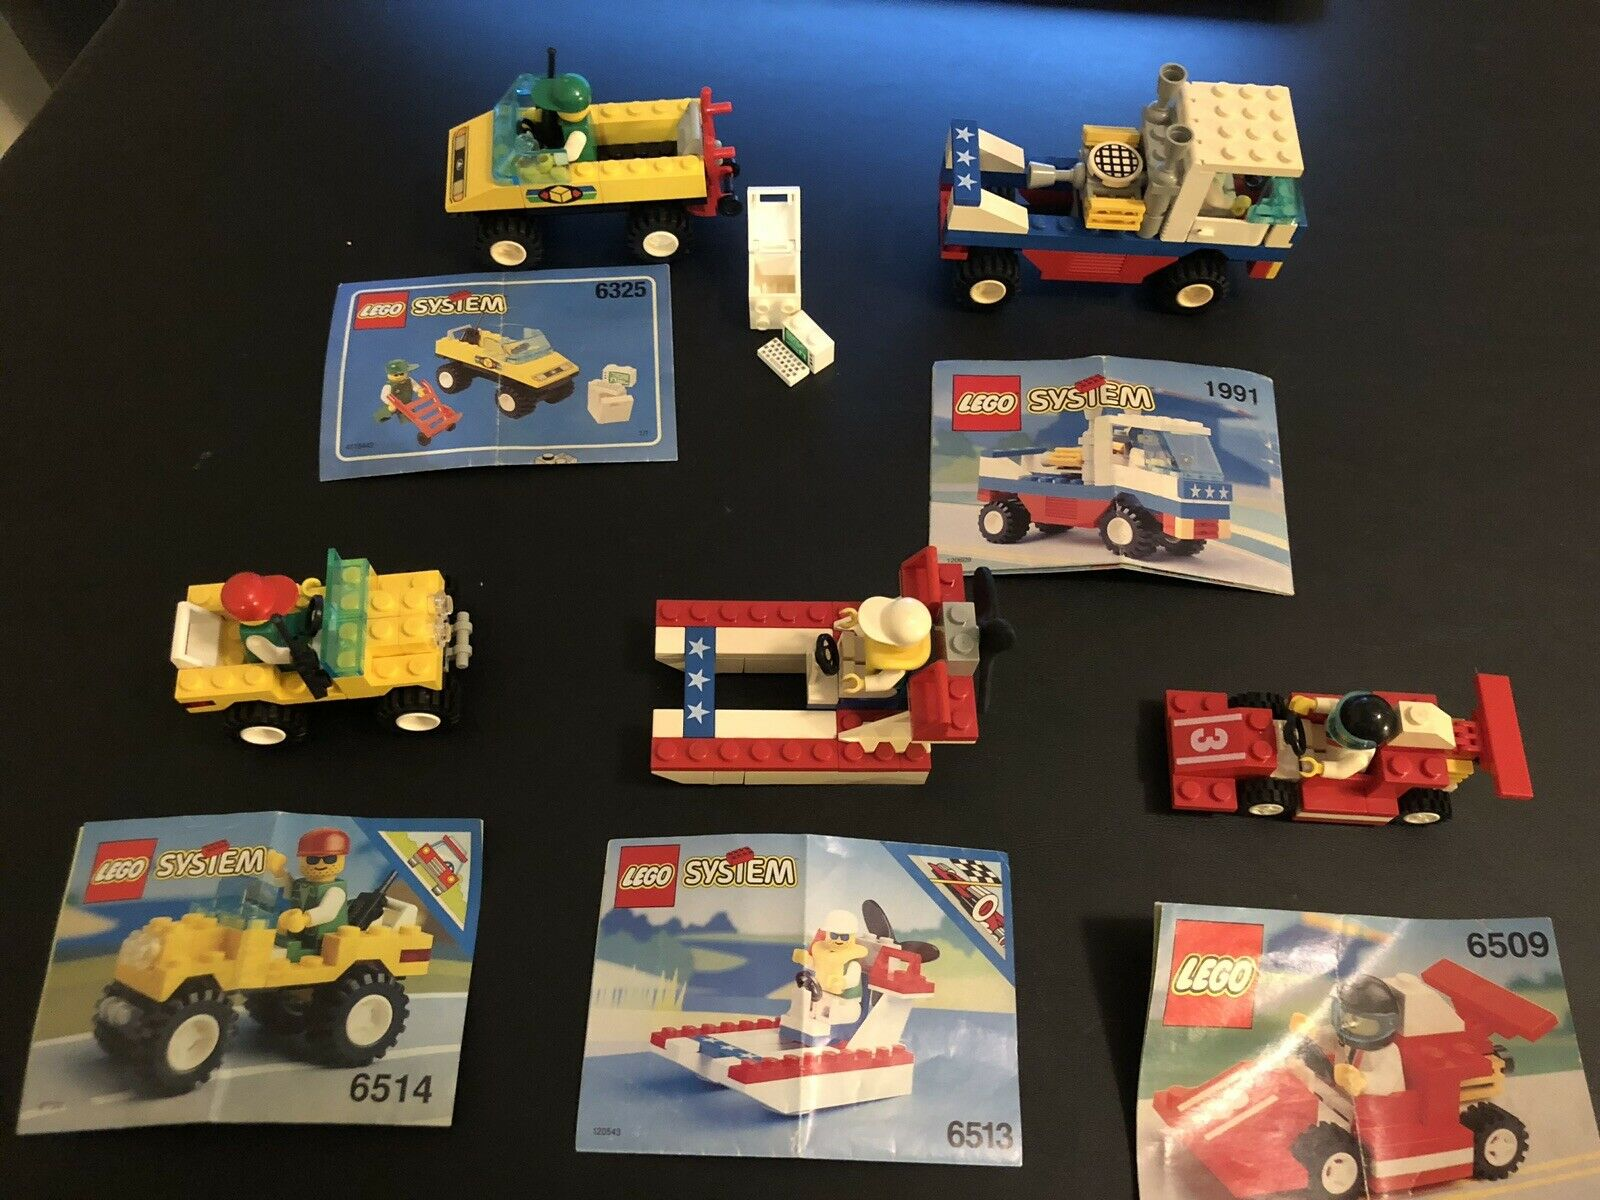 Vintage LEGO System Lot 6325 6513 1991 6509 6514 6514 6514 Complete Minifigs Instructions 462756